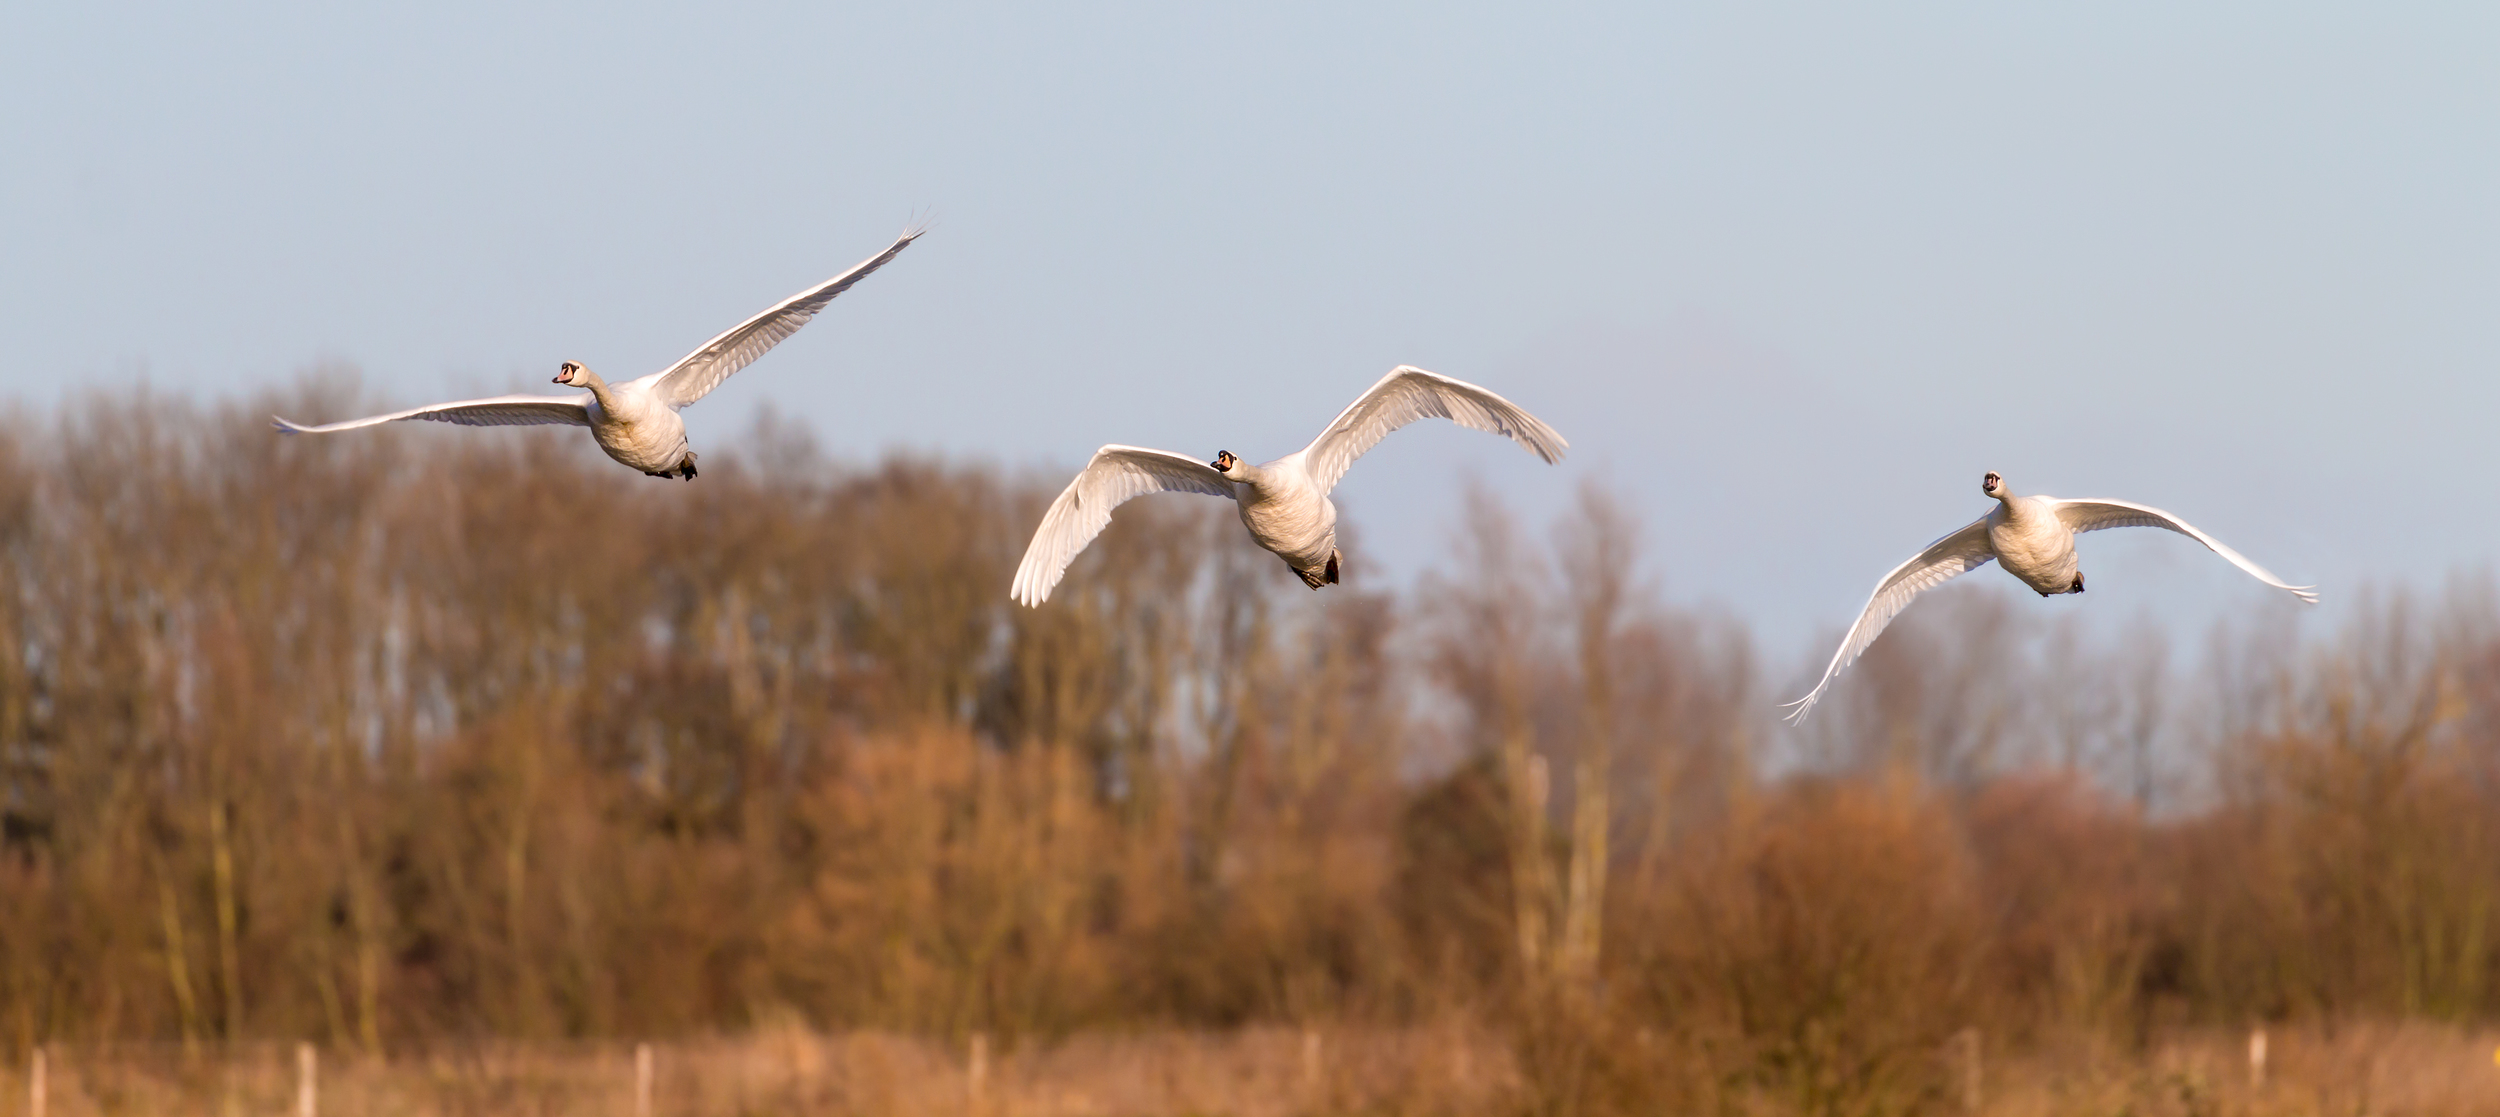 Trio of low flying Swans